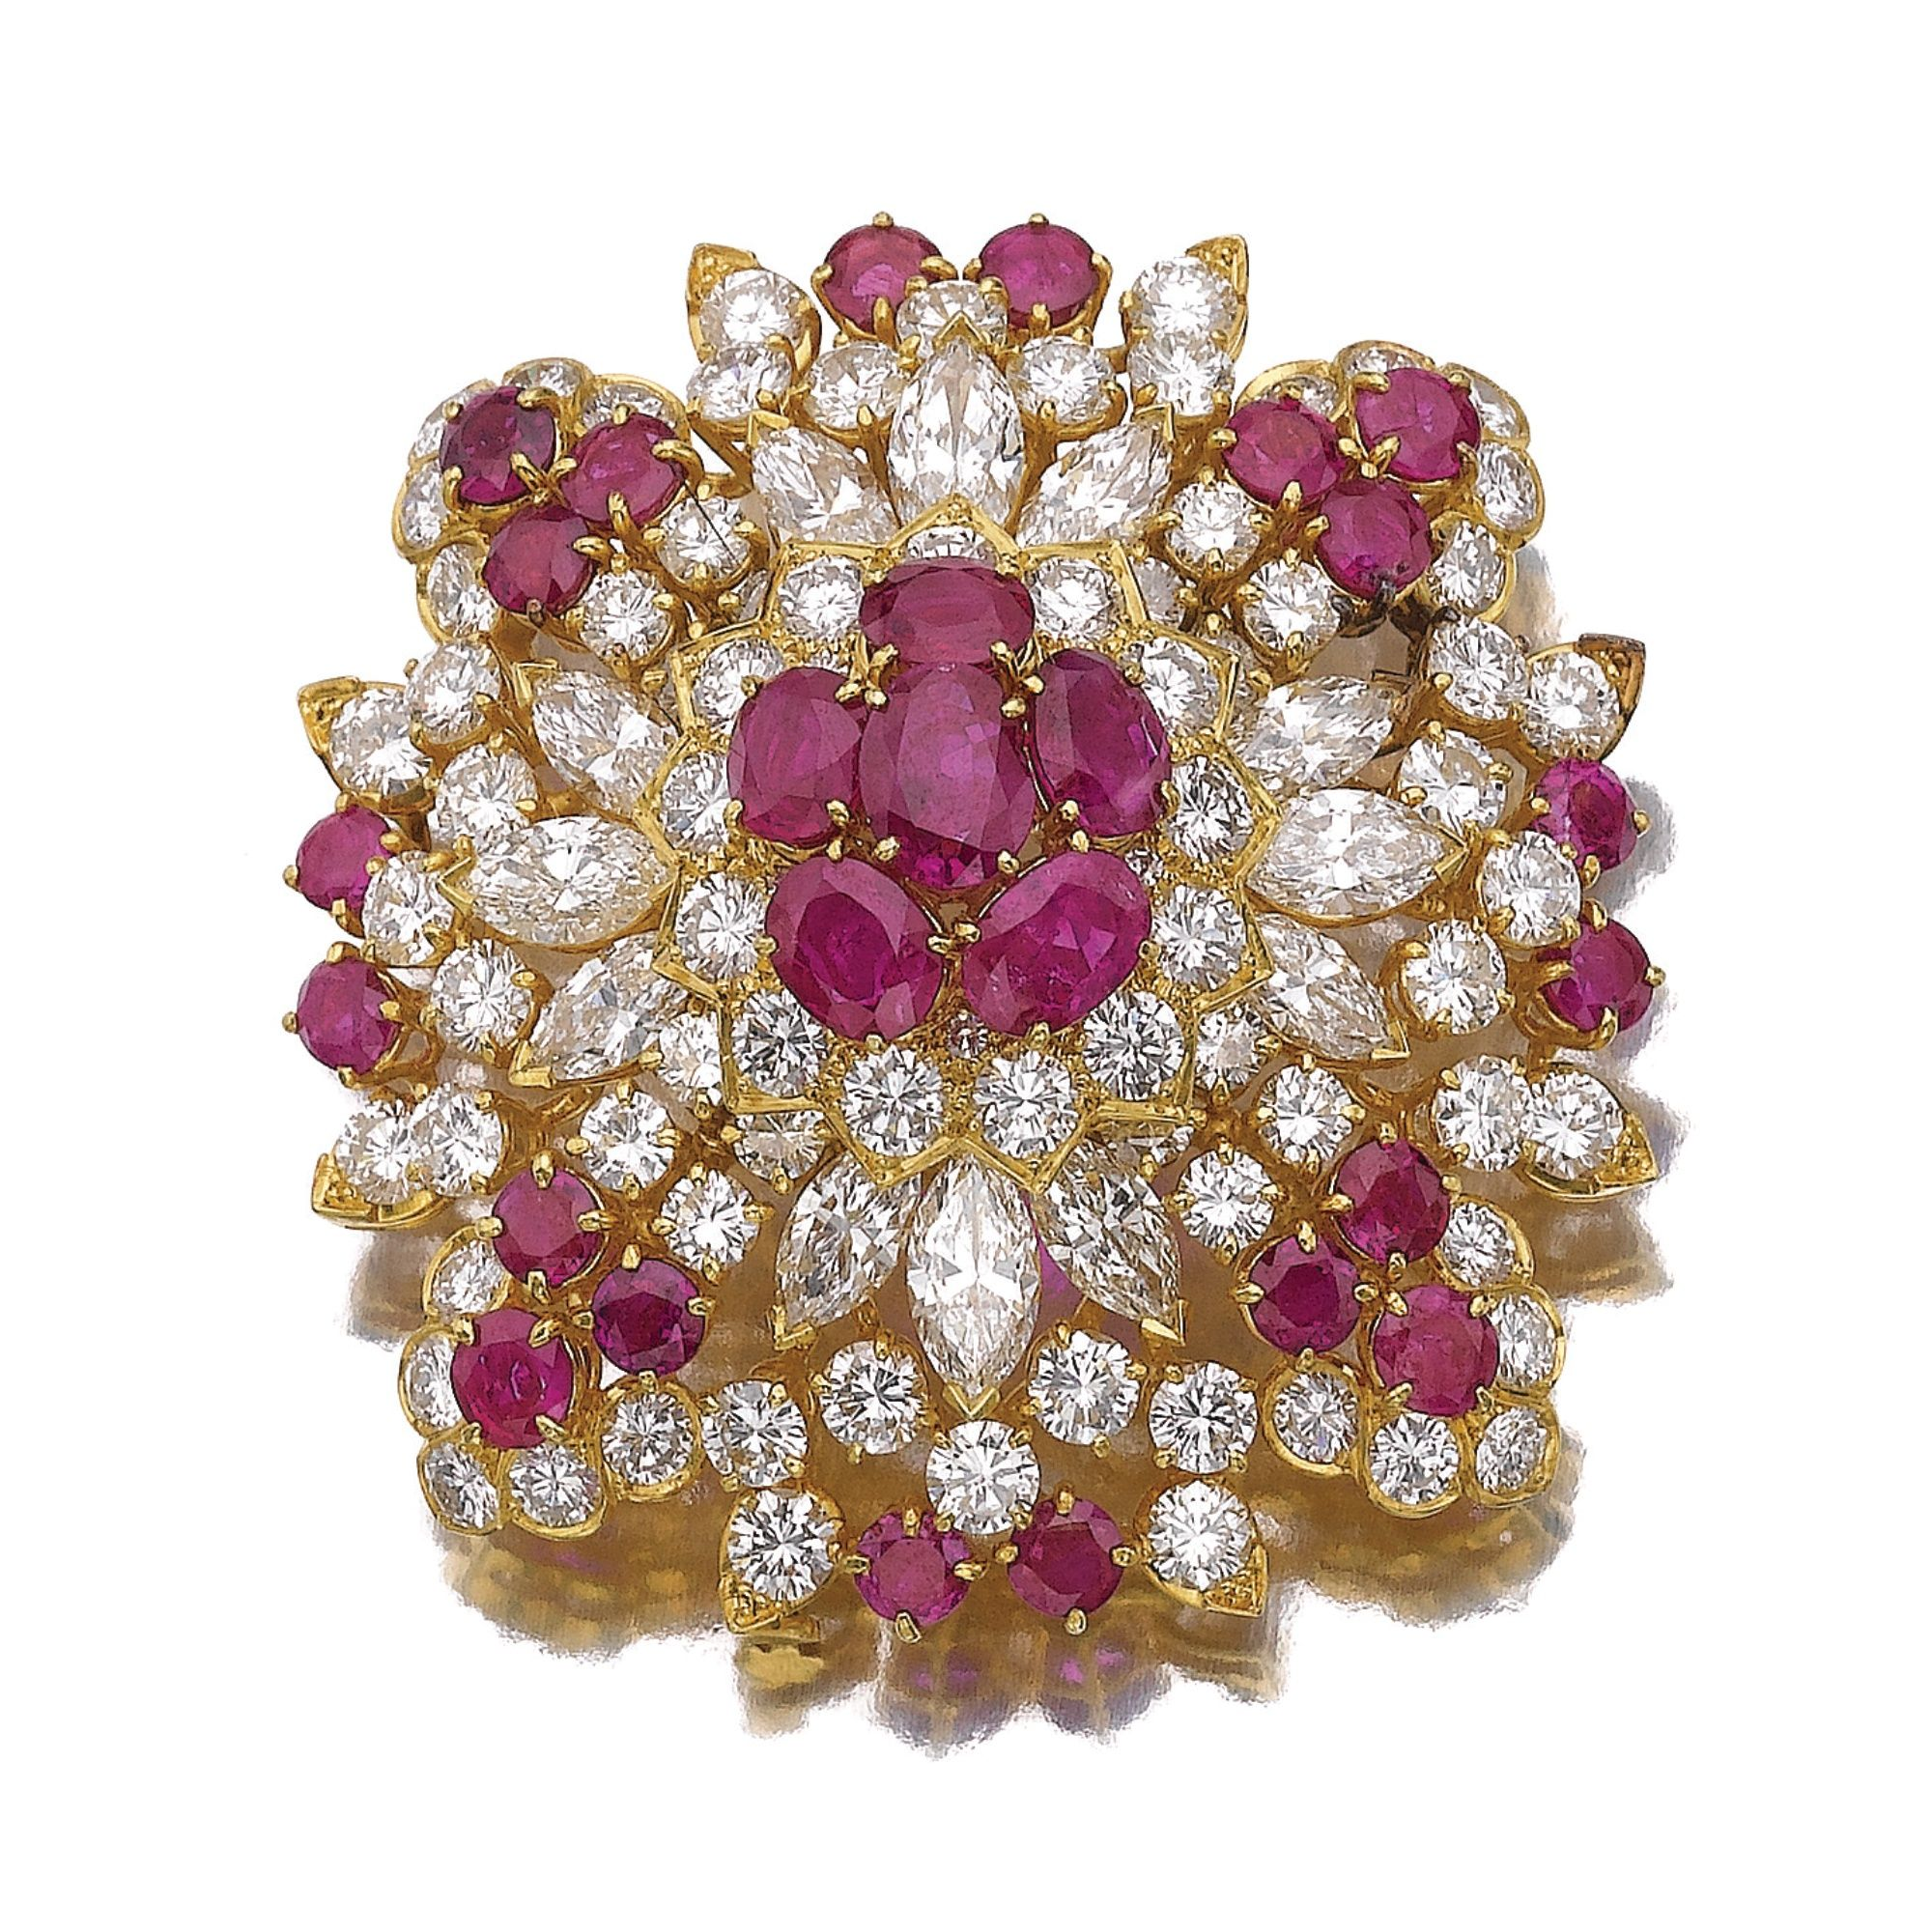 RUBY AND DIAMOND BROOCH, VOURAKIS Of bombé form, set with marquise-shaped and brilliant-cut diamonds, oval and circular-cut rubies